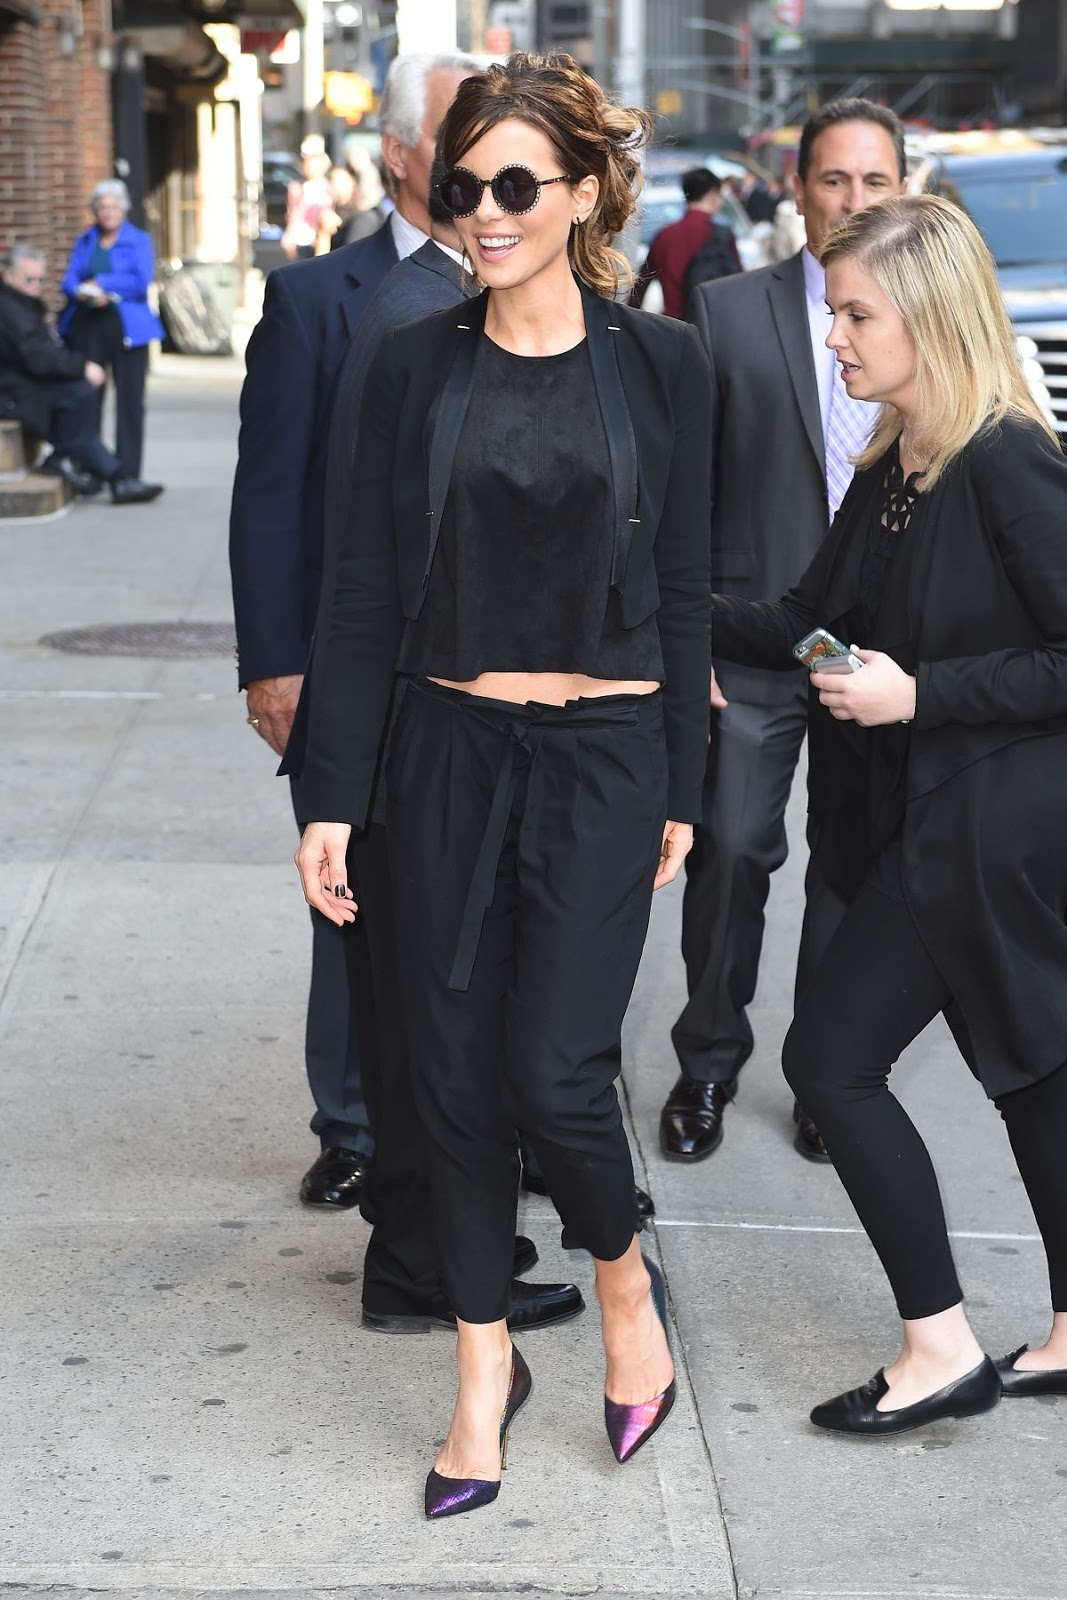 Kate Beckinsale look hot in Black dress Out And About In New York